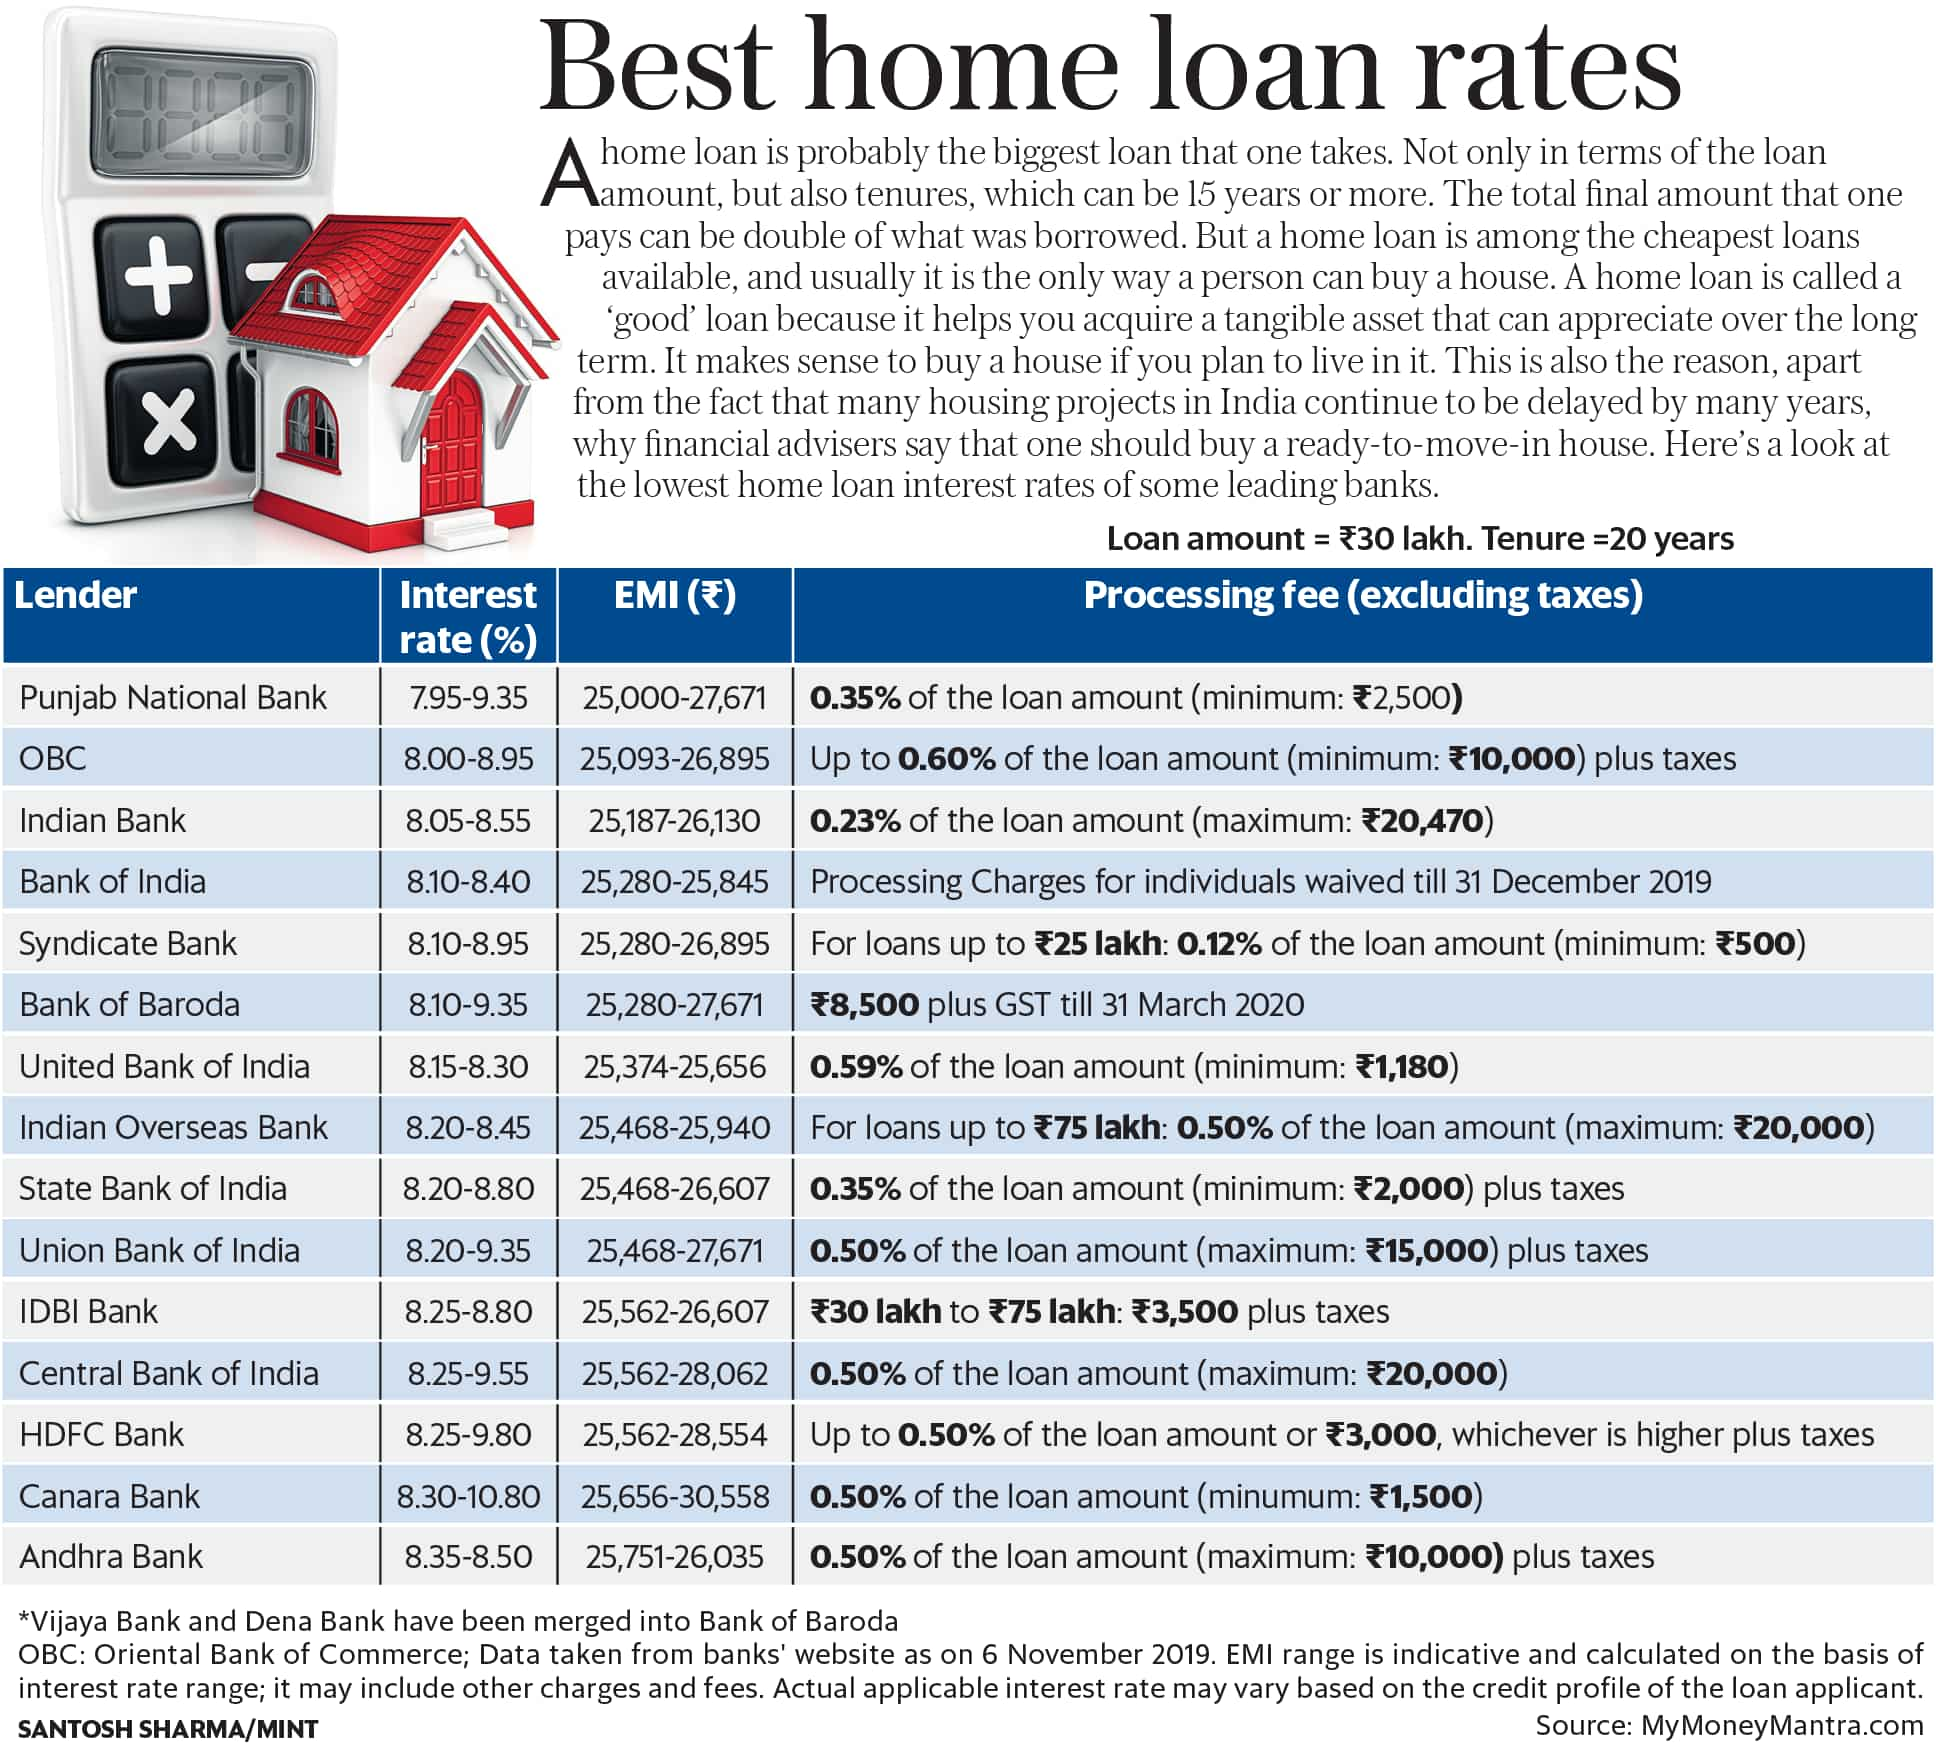 Here's a look at the latest home loan interest rates